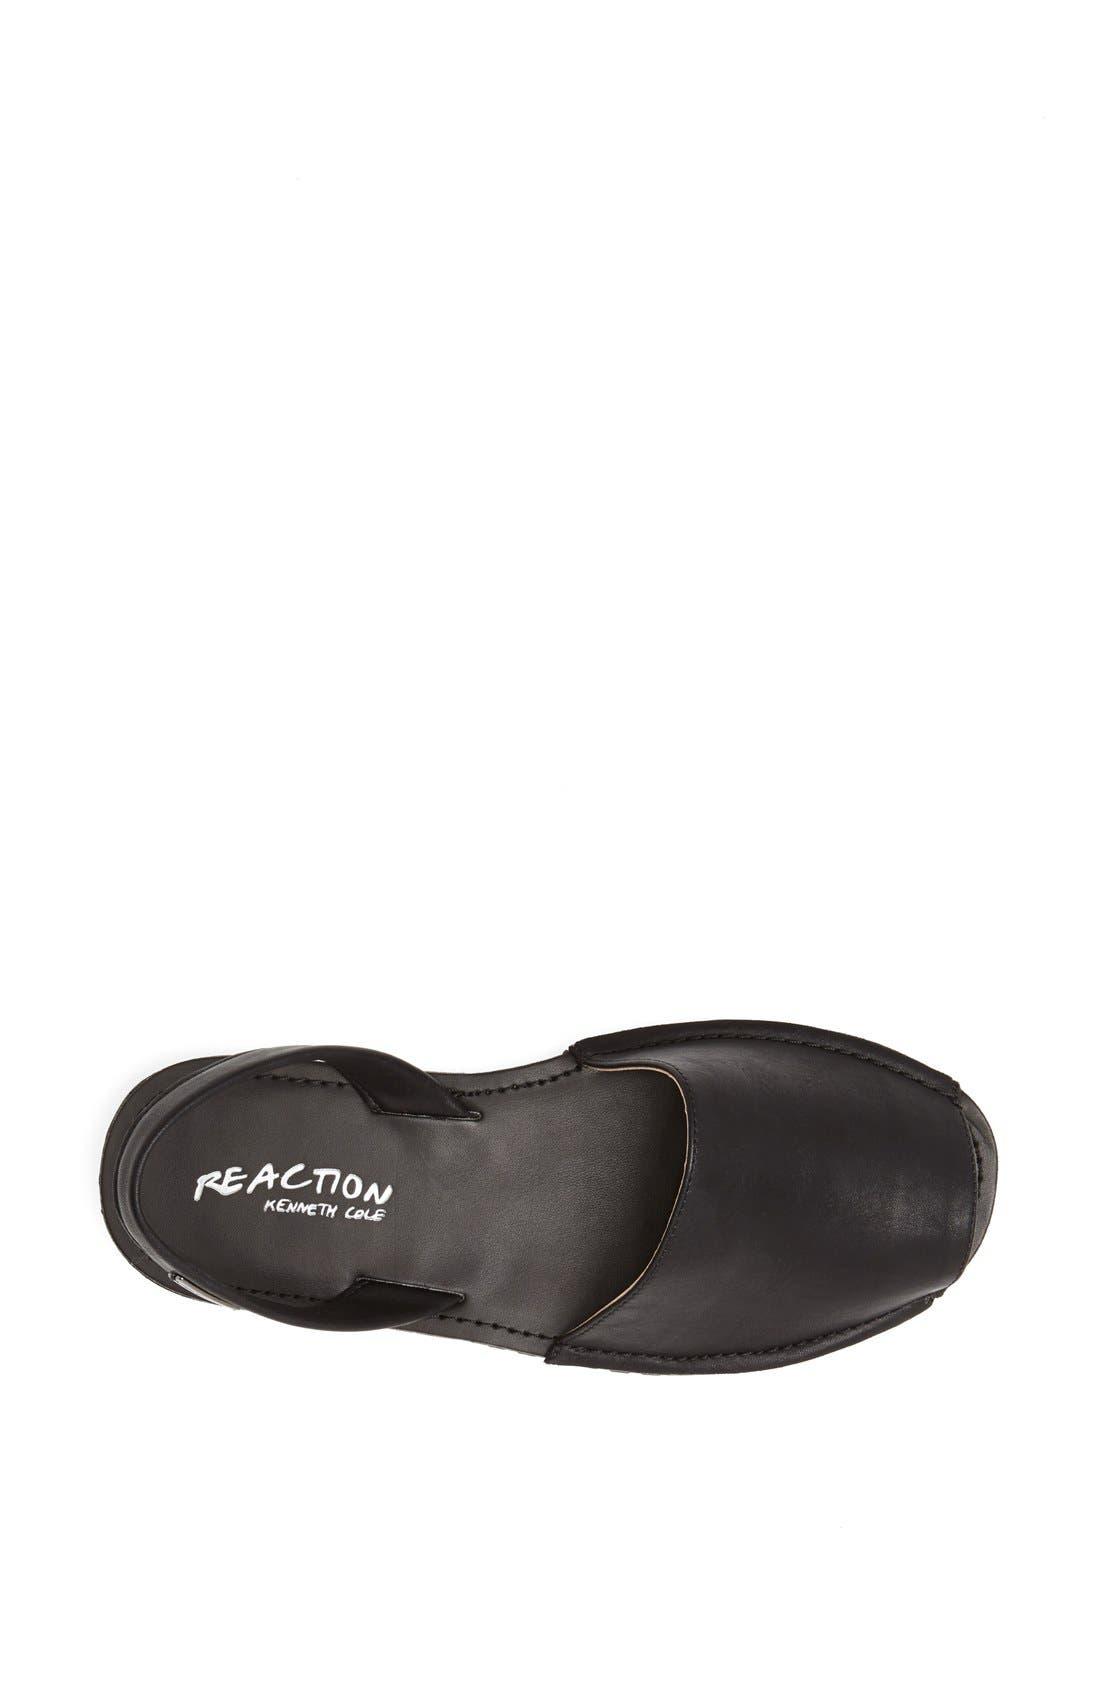 Alternate Image 3  - Kenneth Cole Reaction 'Wipe Away' Slingback Sandal